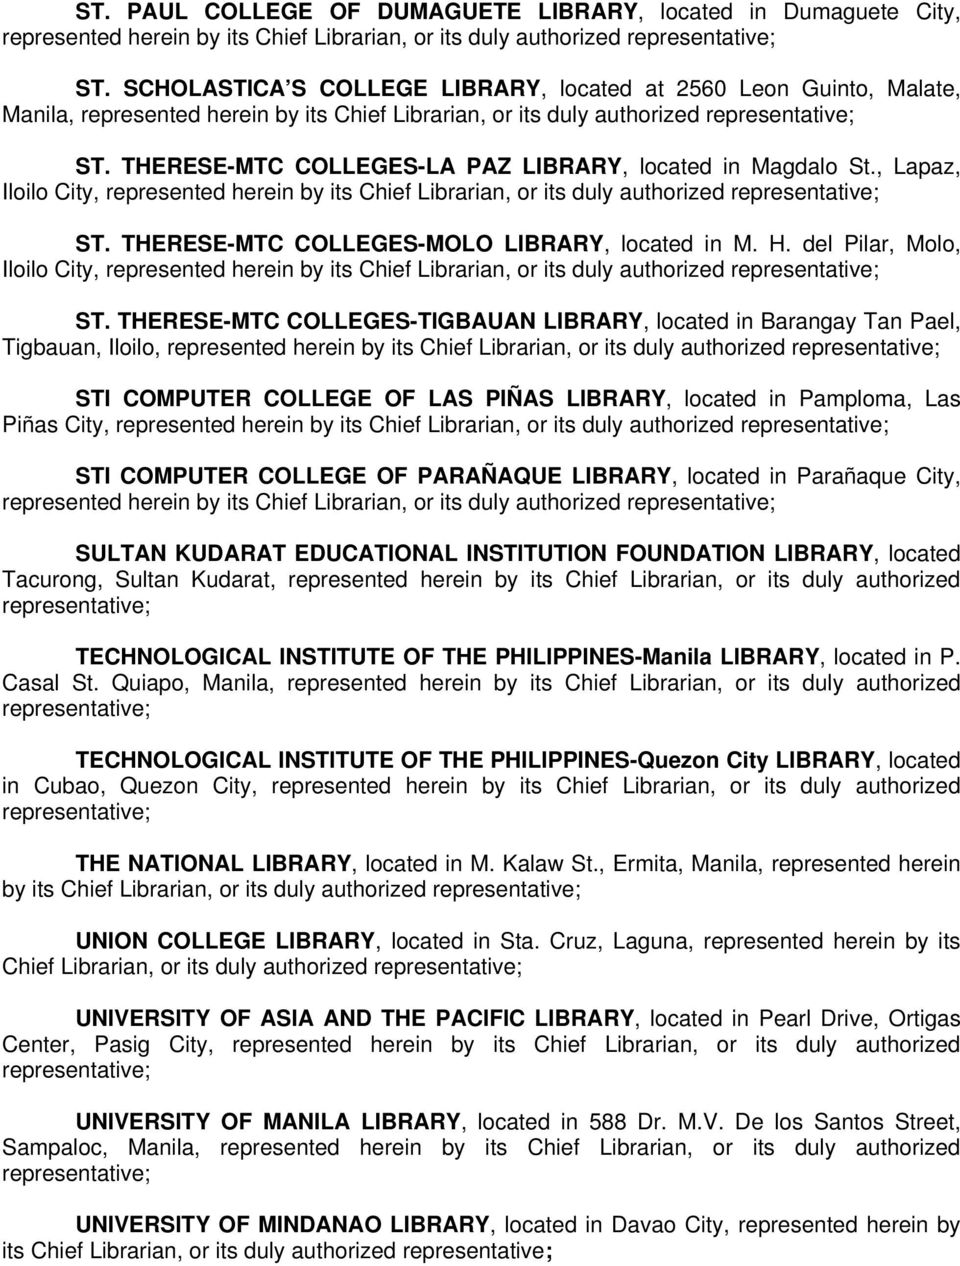 THERESE-MTC COLLEGES-TIGBAUAN LIBRARY, located in Barangay Tan Pael, Tigbauan, Iloilo, STI COMPUTER COLLEGE OF LAS PIÑAS LIBRARY, located in Pamploma, Las Piñas City, STI COMPUTER COLLEGE OF